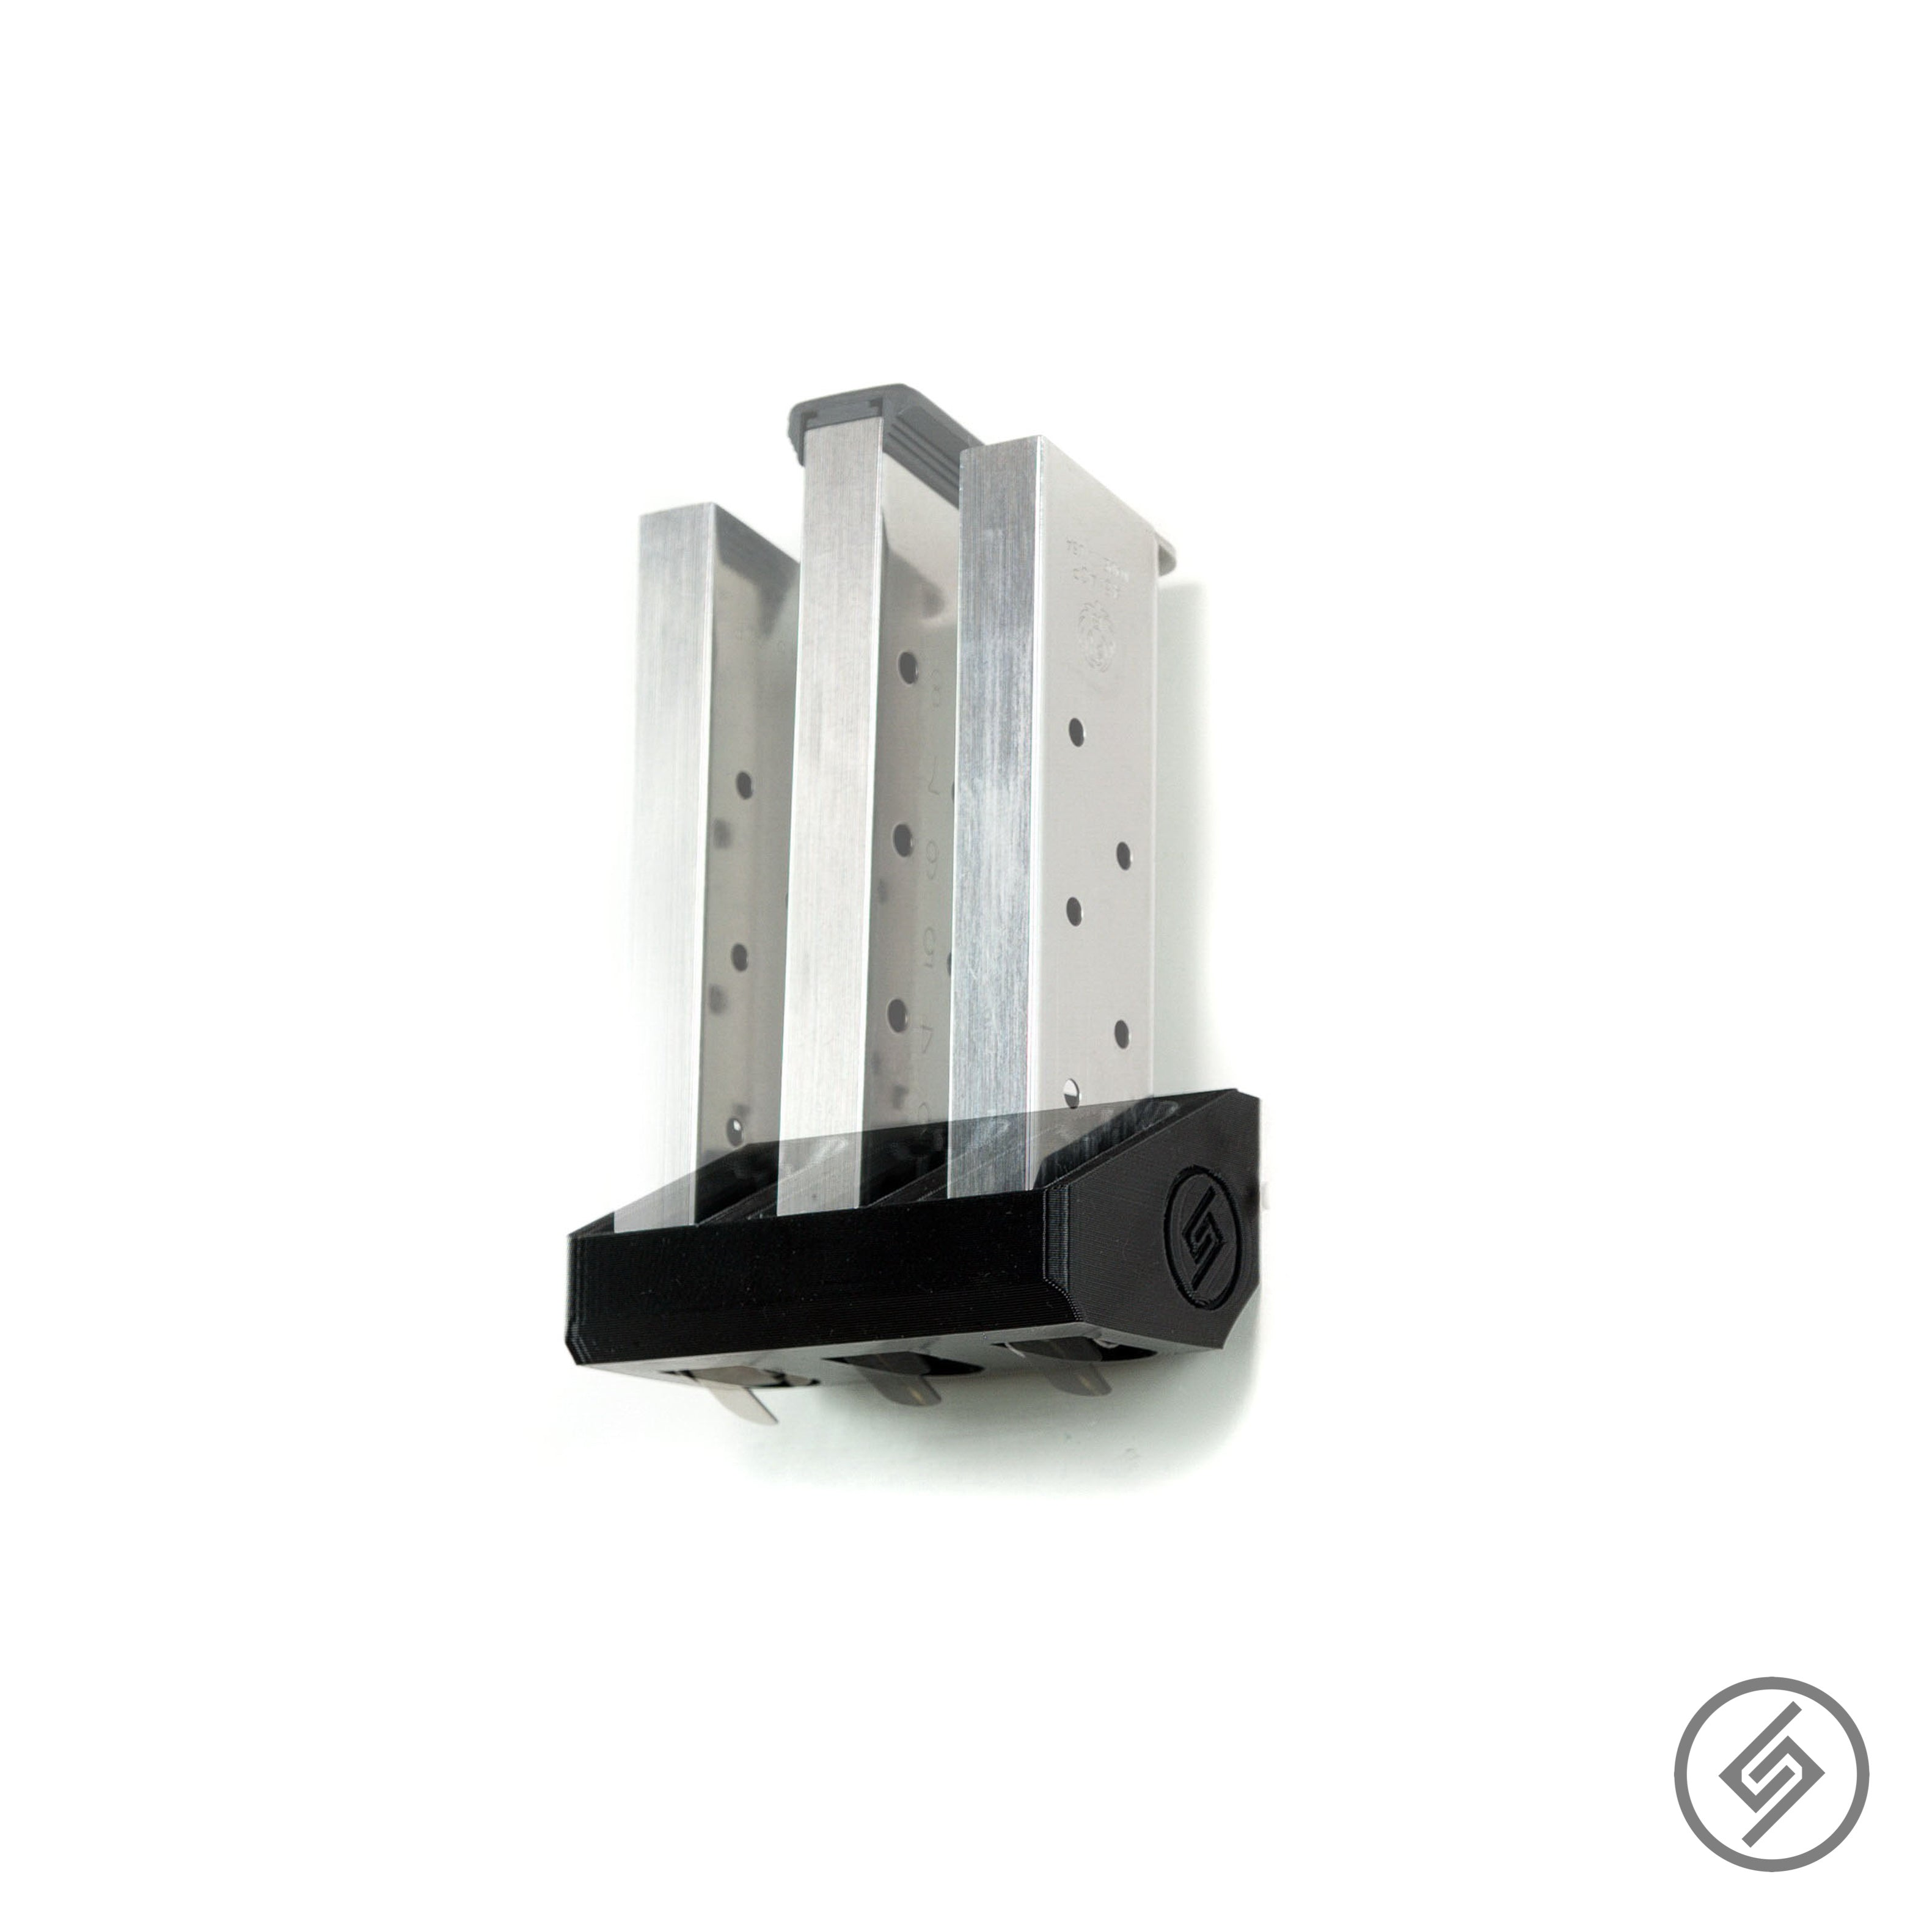 Springfield 911 MAG Wall Mount, Transparent, Spartan Mounts, Display organization storage wall mount solution